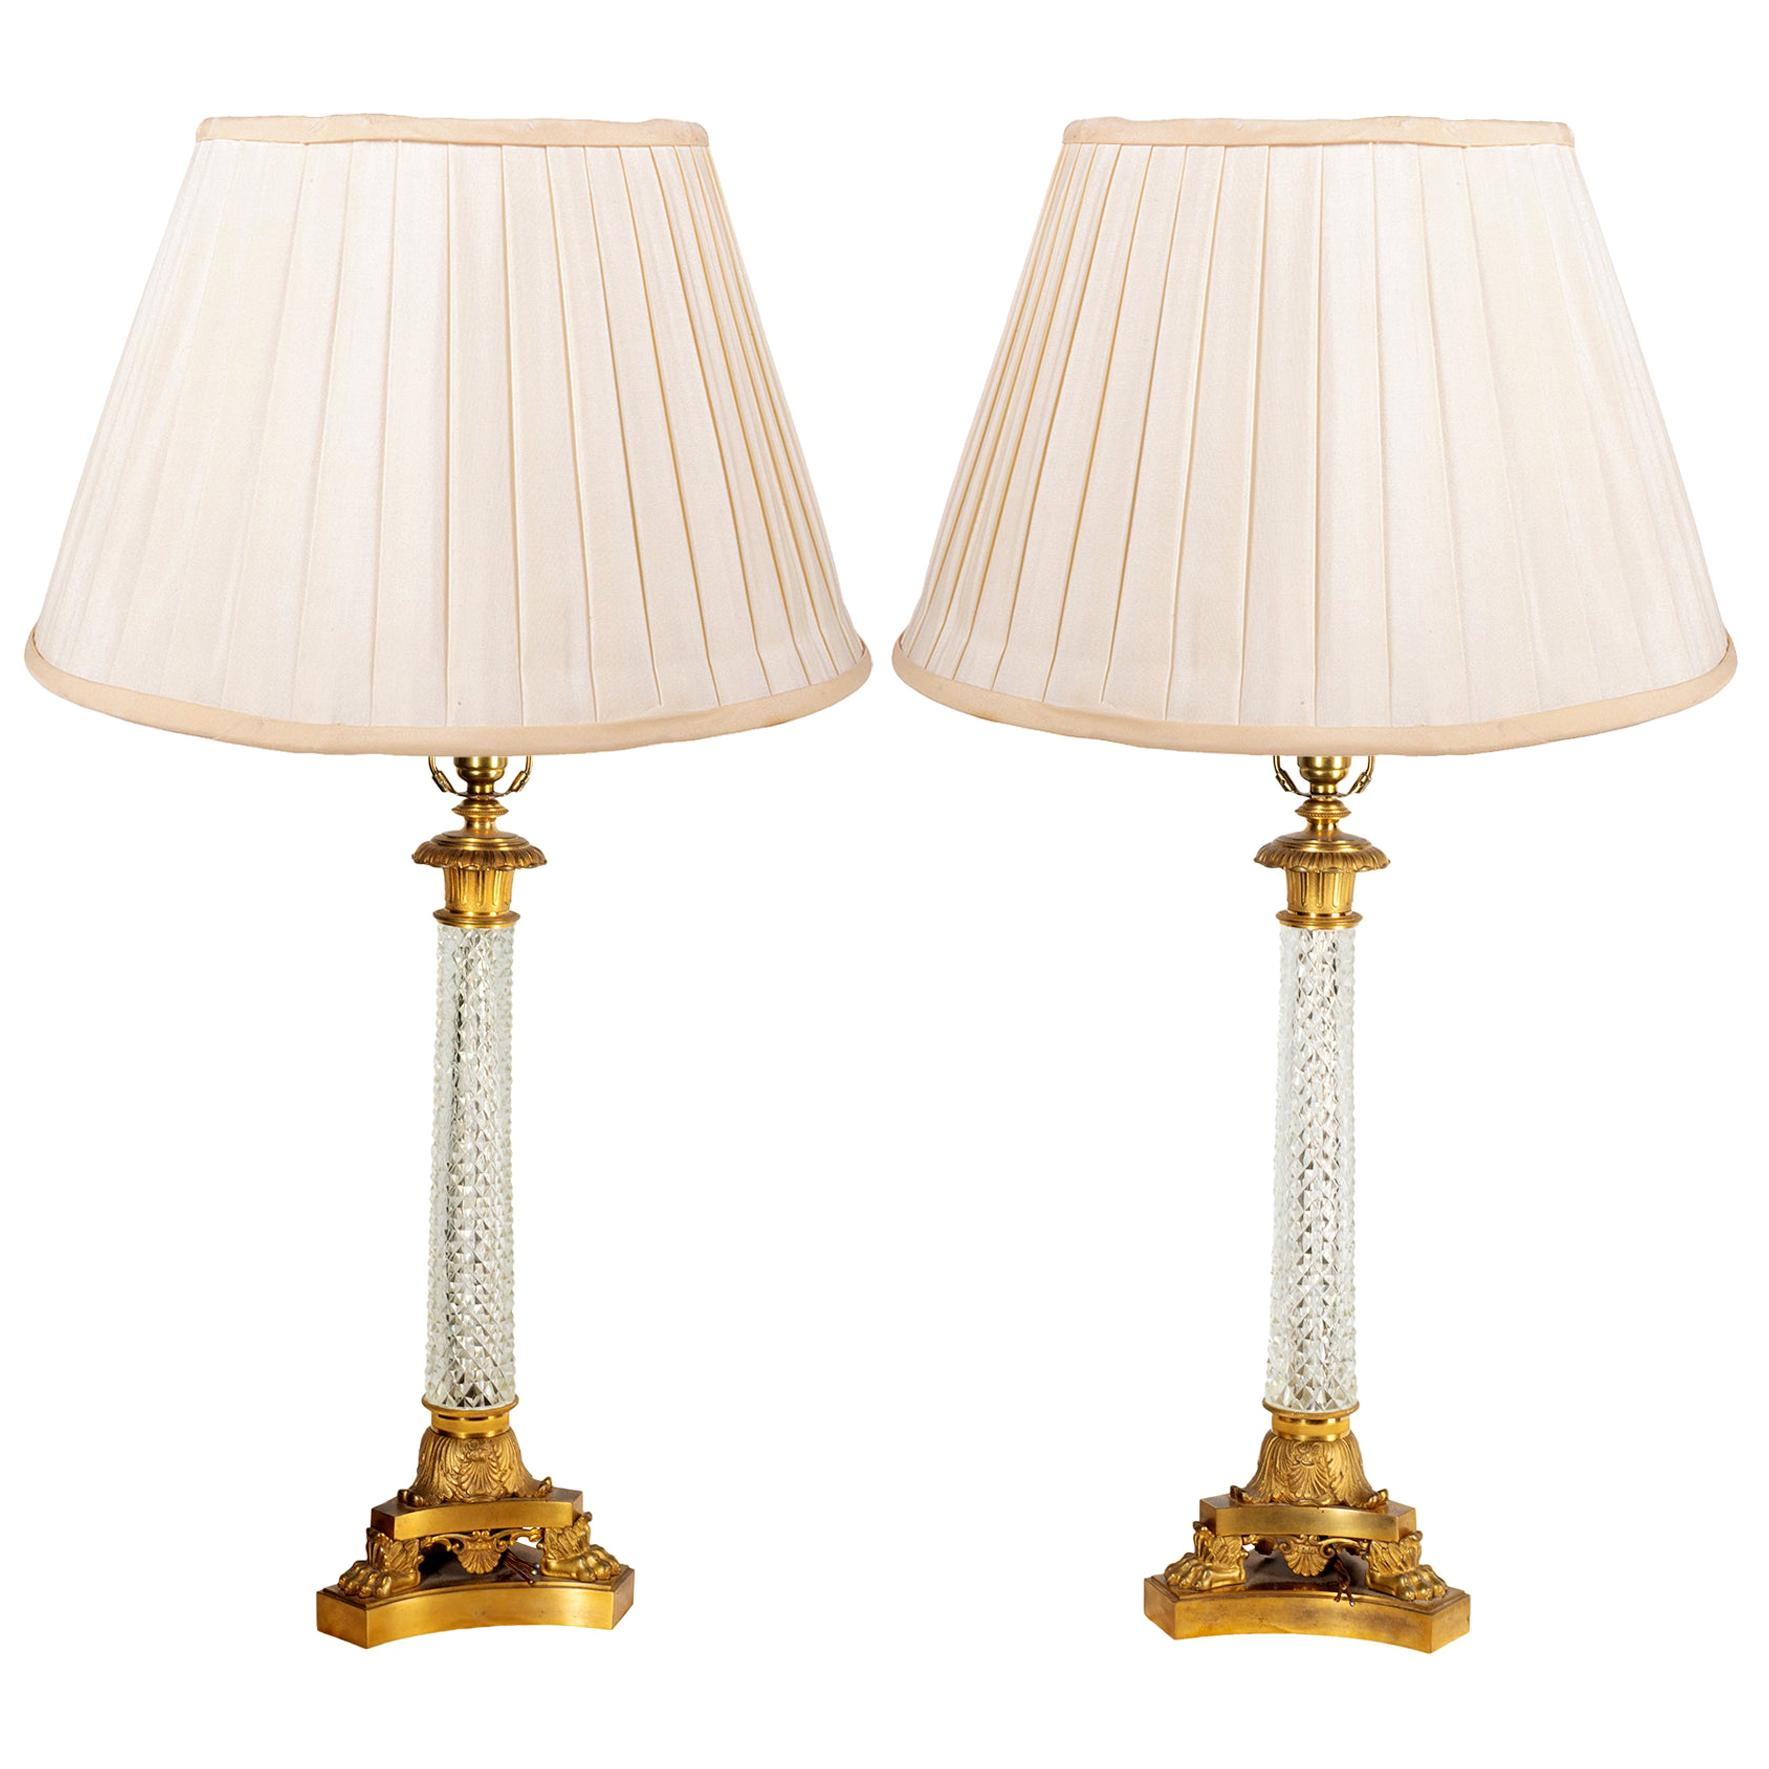 Pair of Cut Glass Classical Empire Style Column Lamps